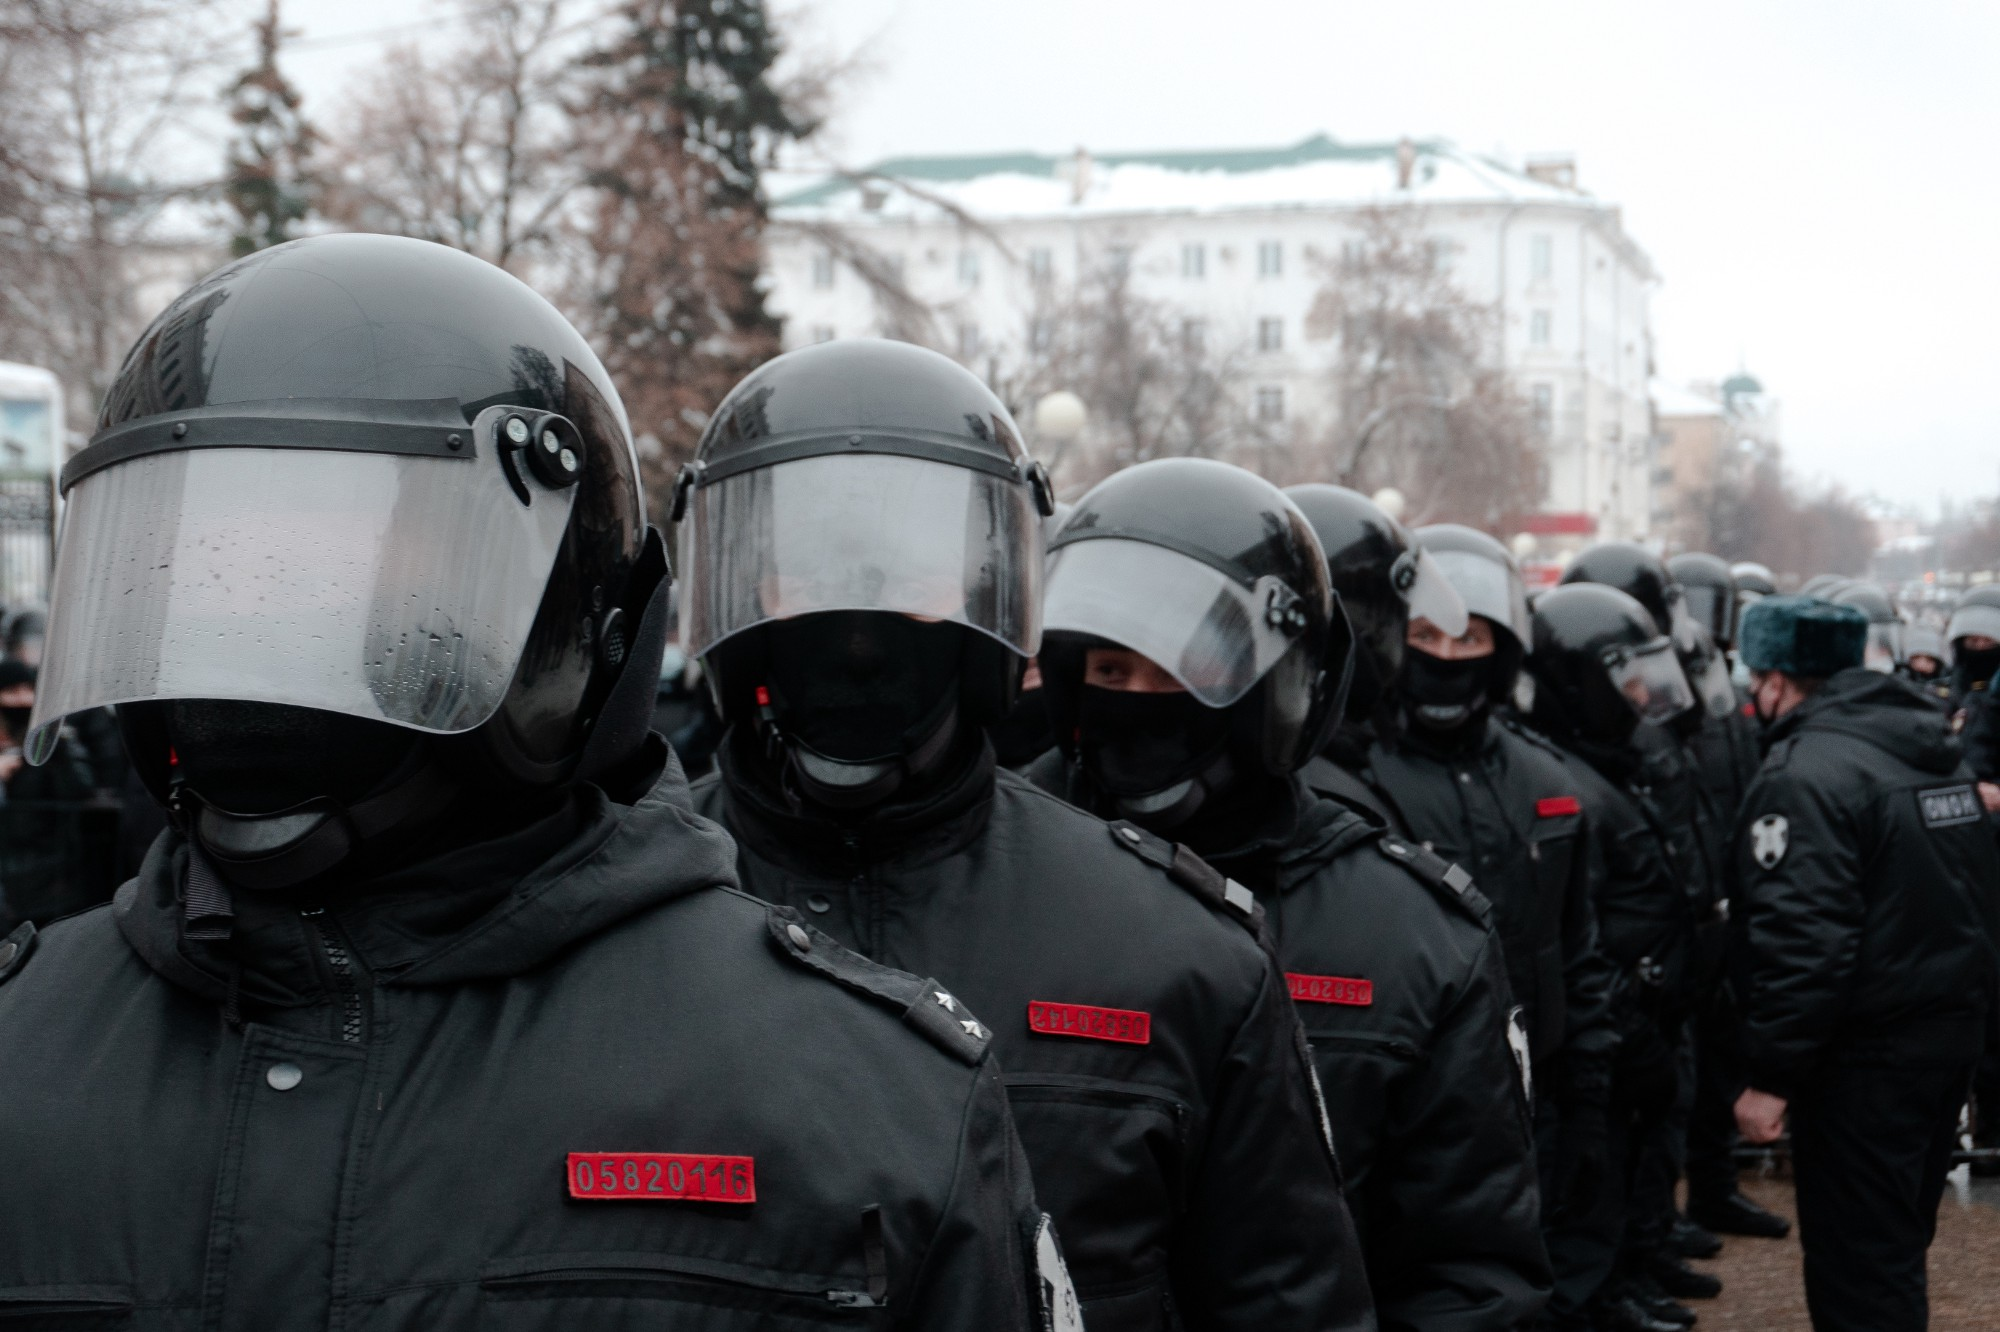 Police forces dressed in black with helmets.